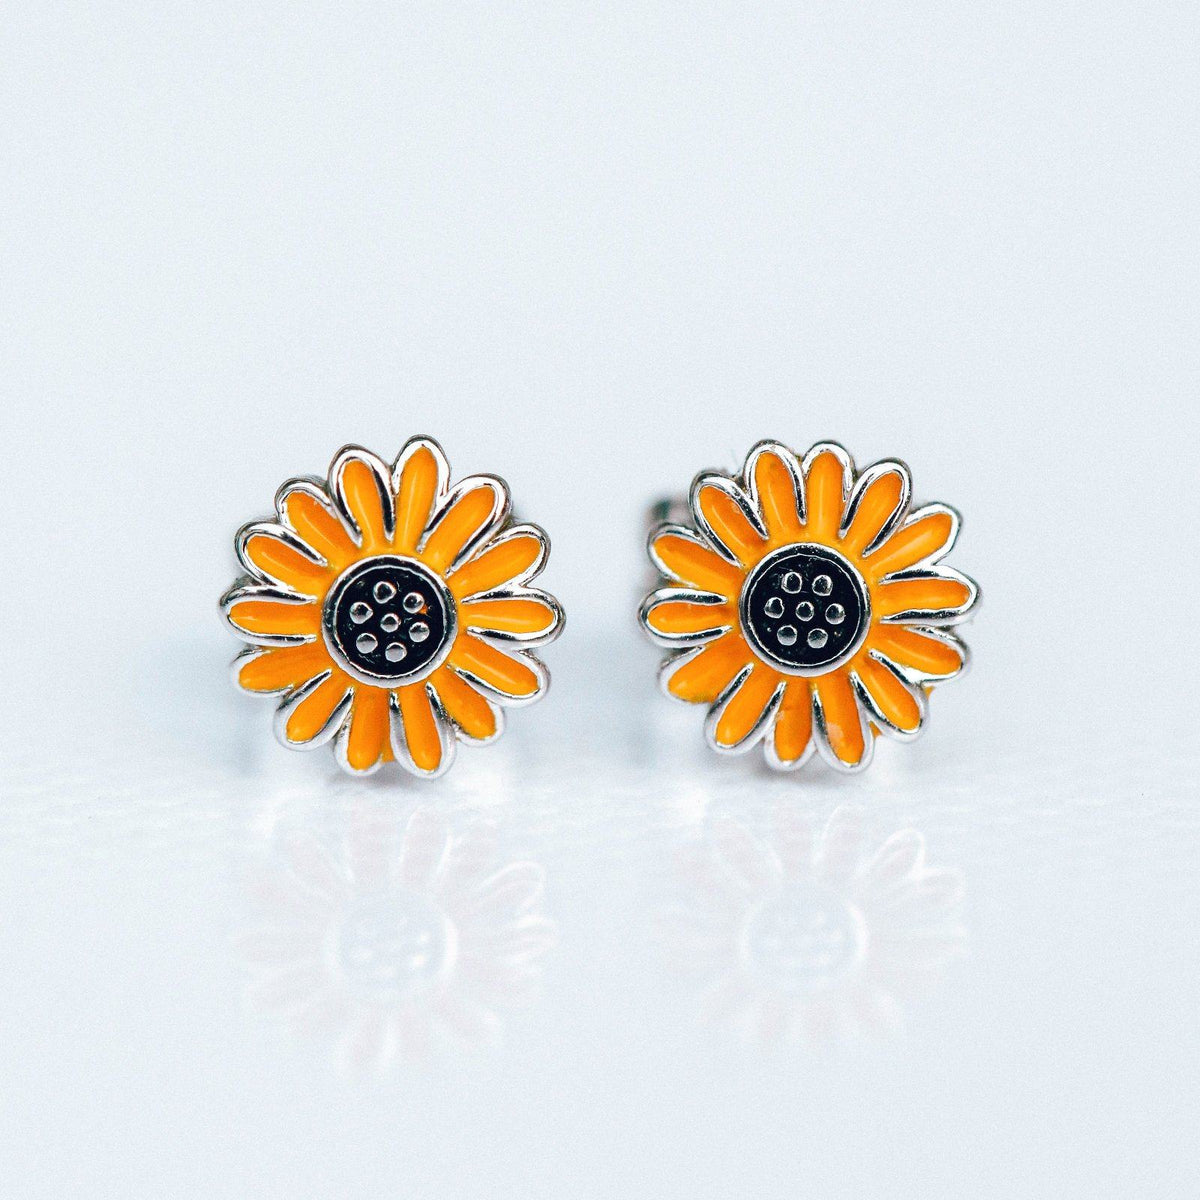 Enamel Sunflower Stud Earrings